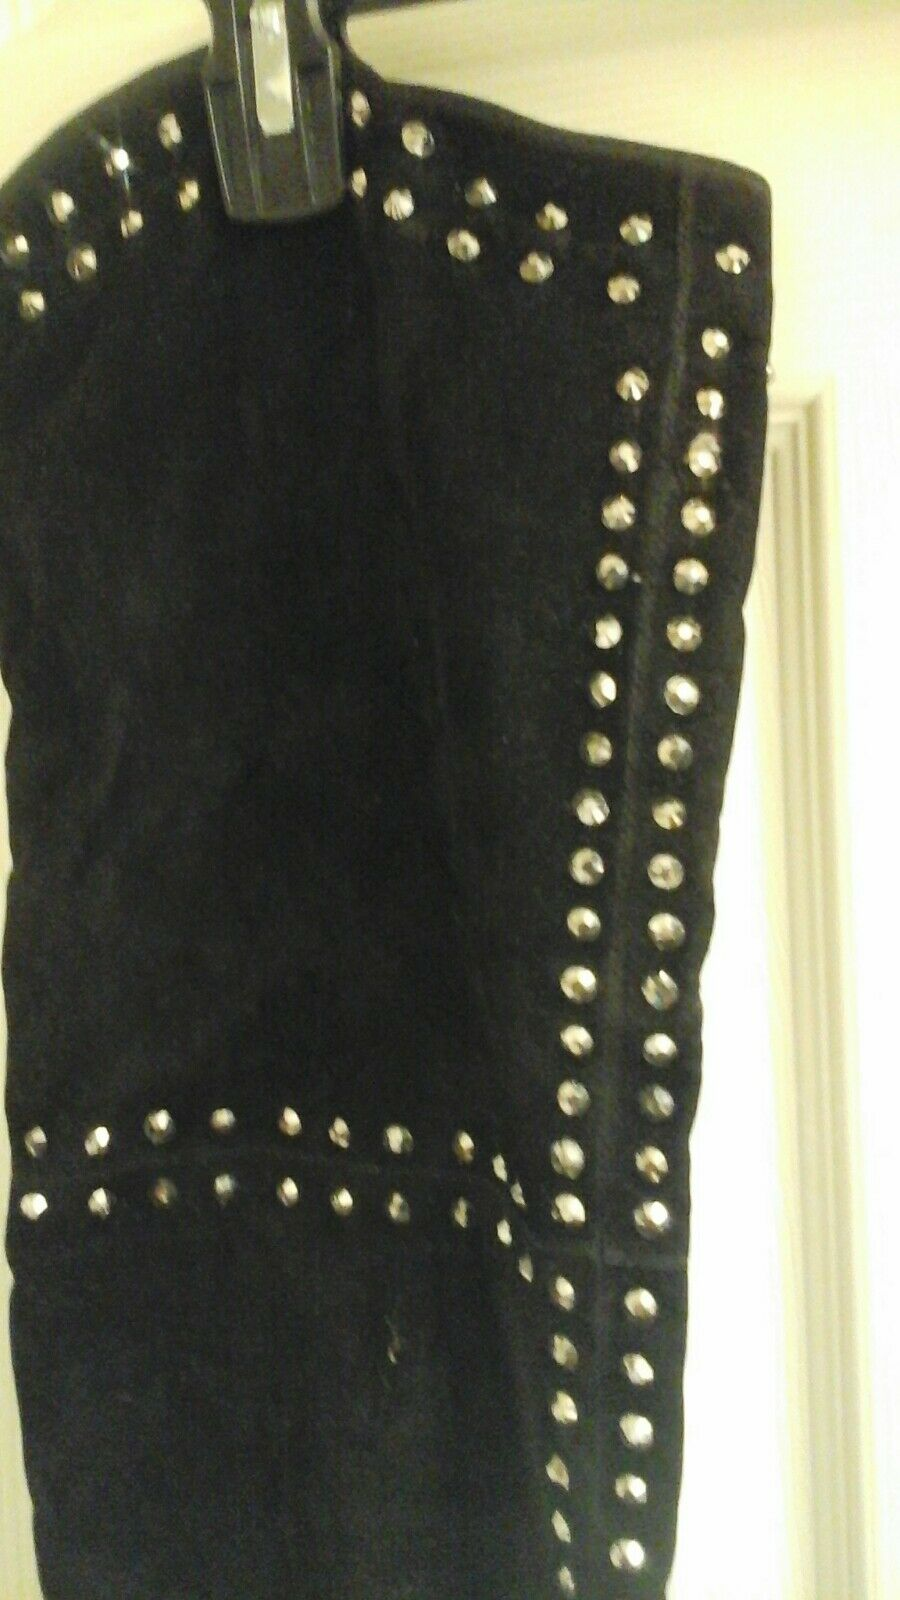 Society 86, Black Suede studded knee High Boots, Boots, Boots, zipper, women's size 6.5, NWT 1e9938